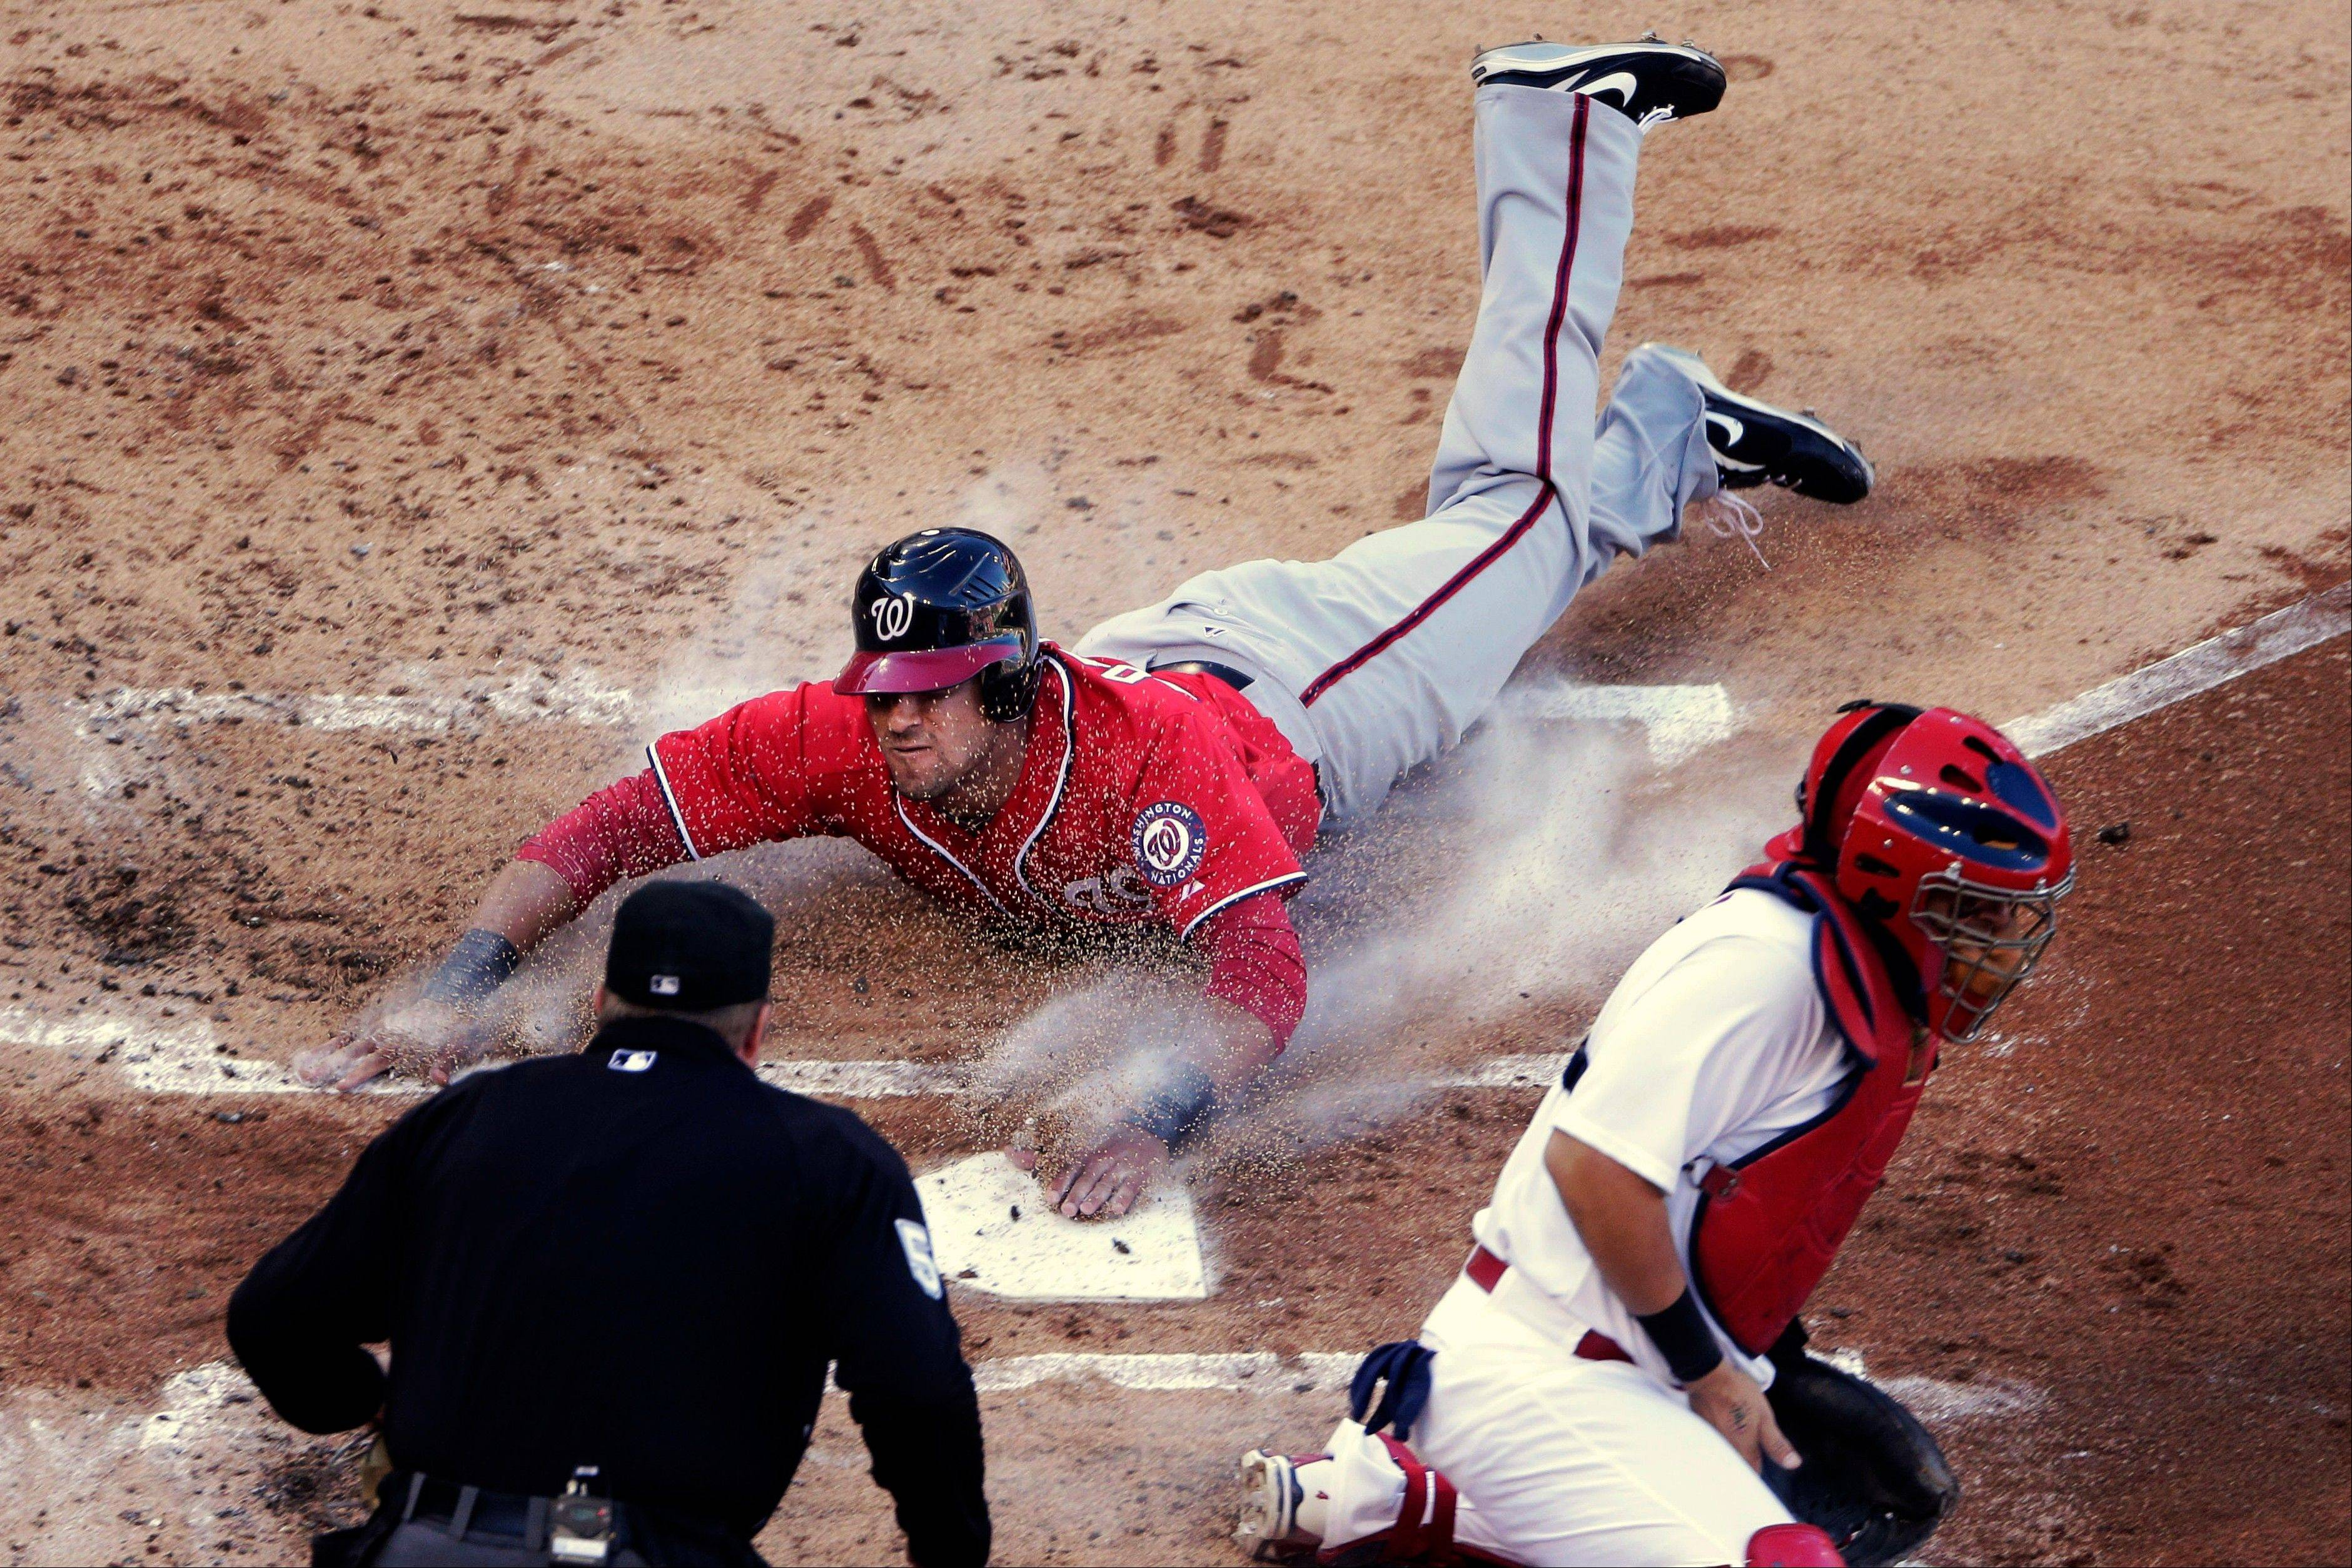 Washington Nationals' Ian Desmond, top, slides home past St. Louis Cardinals catcher Yadier Molina, bottom right, to score on a single by Jordan Zimmermann during the second inning of Game 2 of the National League division baseball series, Monday, Oct. 8, 2012, in St. Louis.